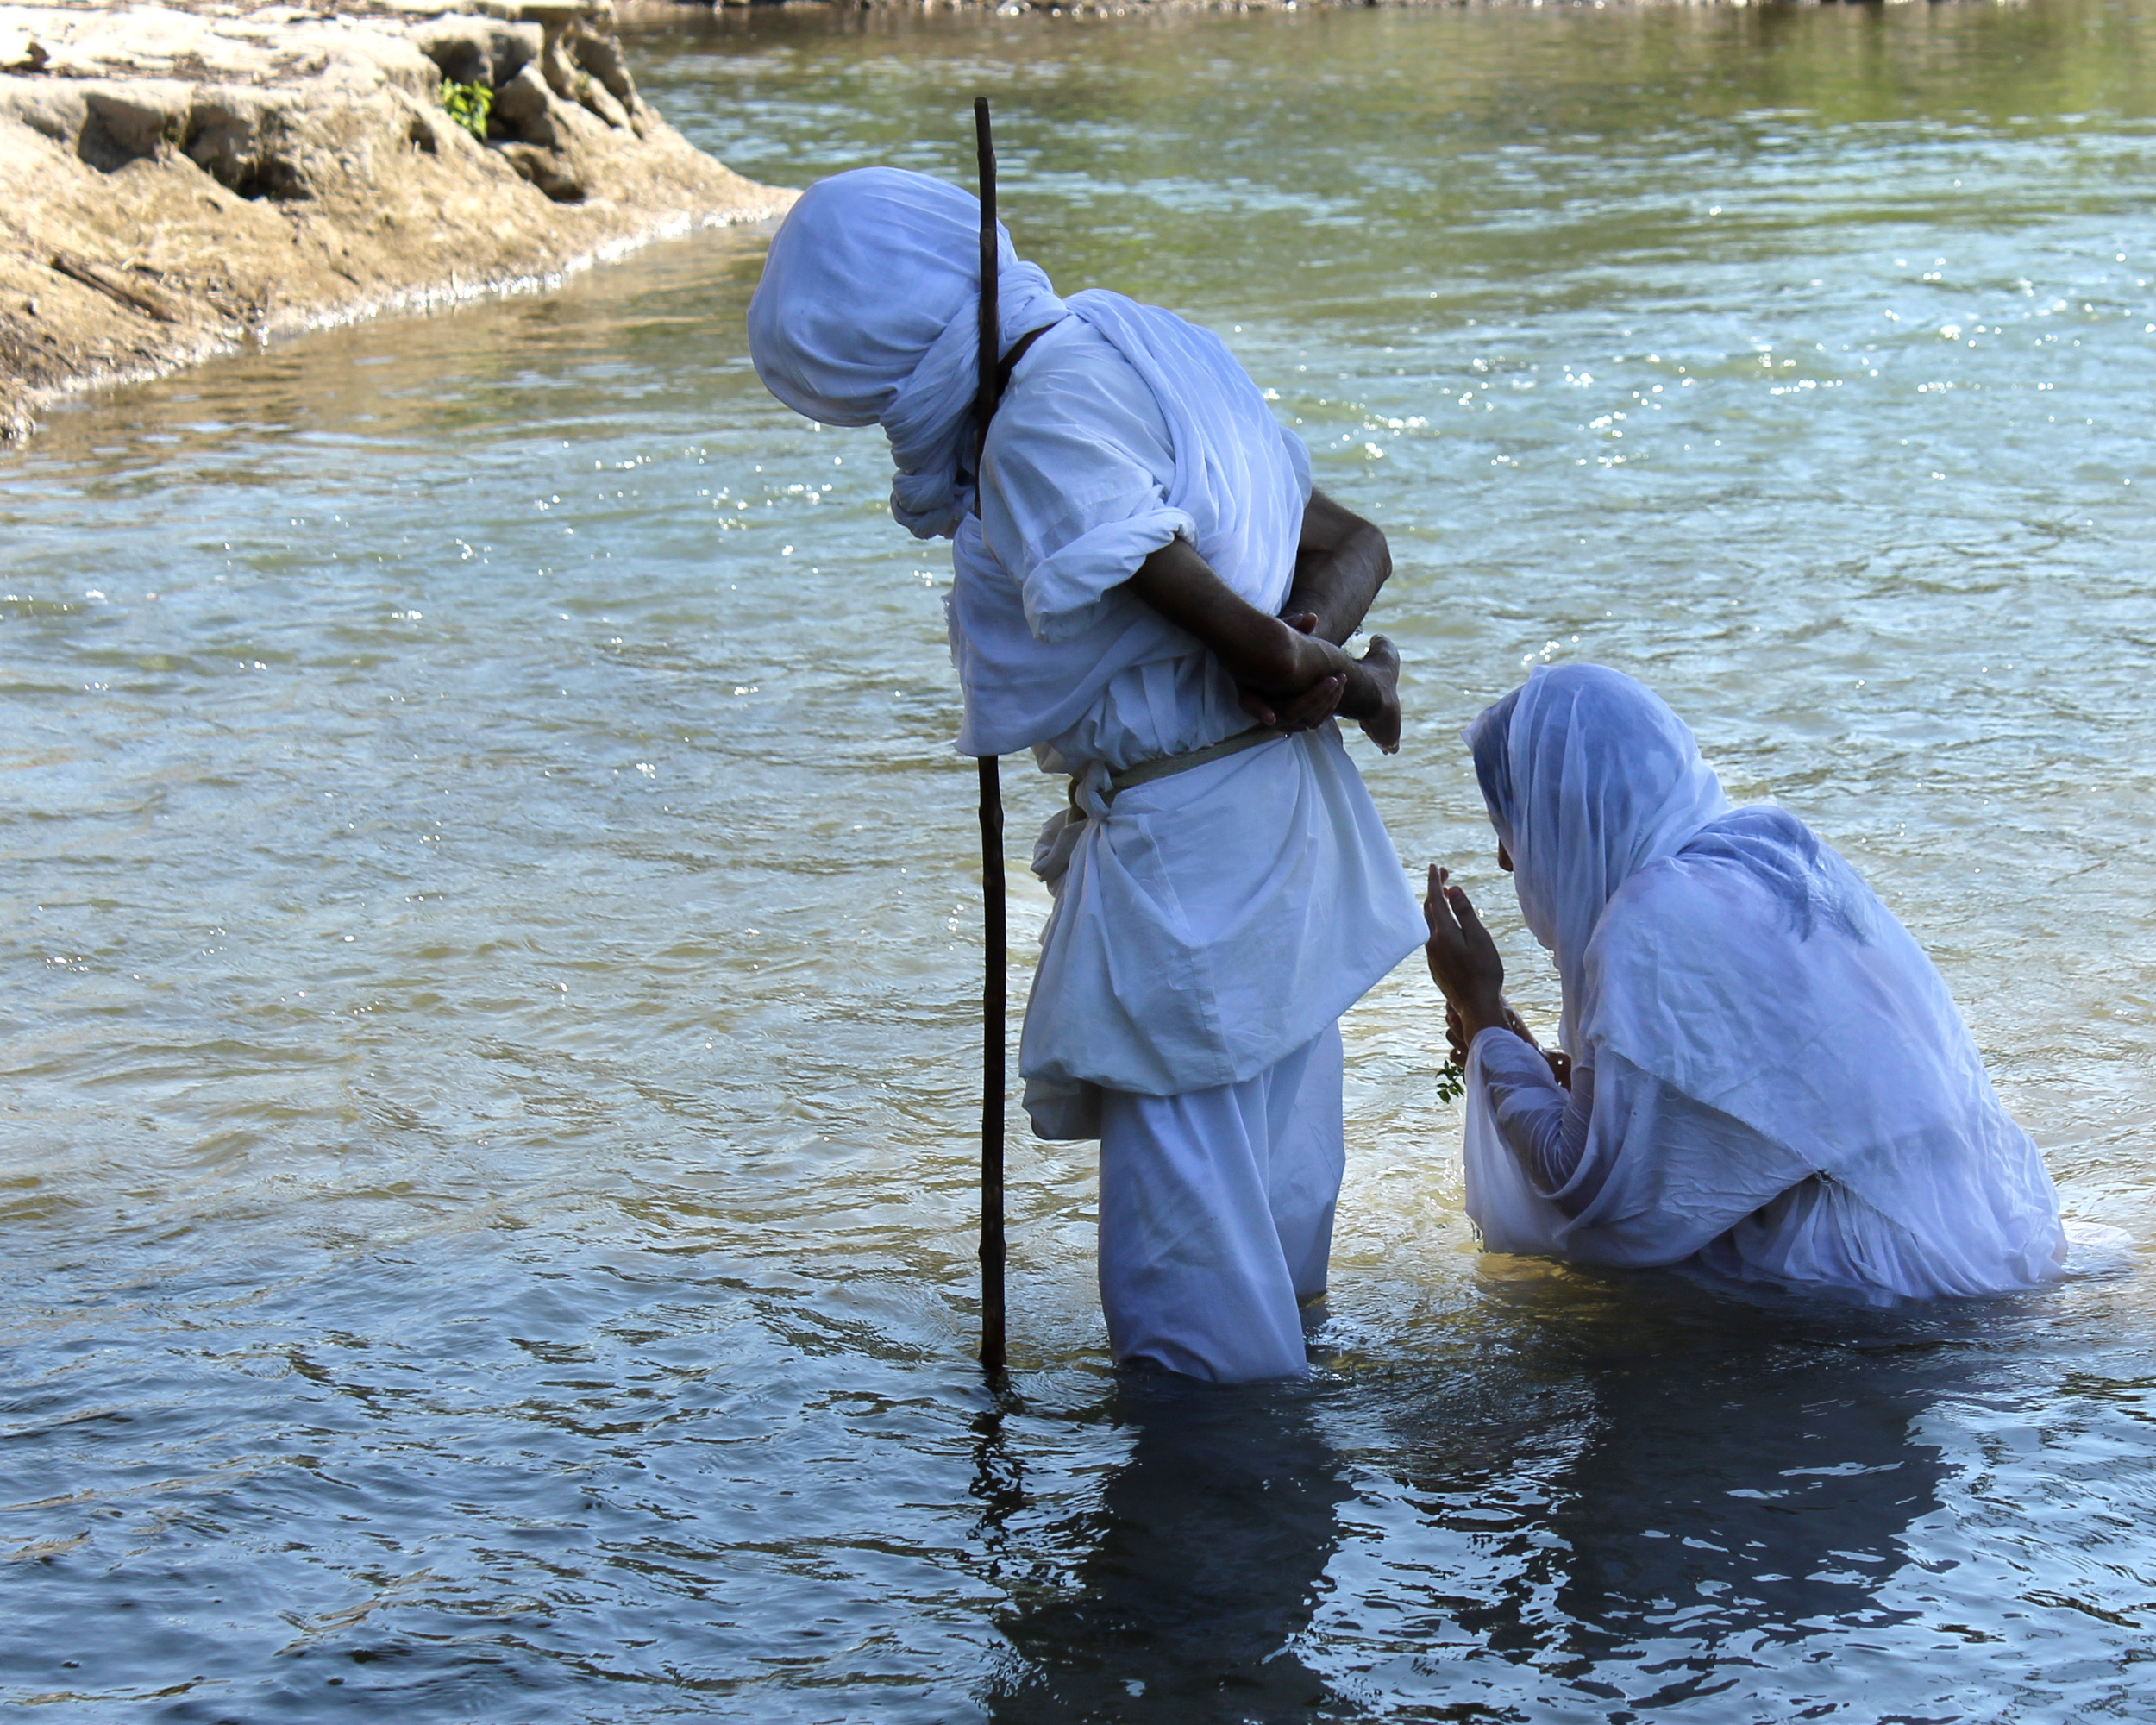 Azita Ebad is baptized. The Mandaeans believe they can only perform their baptisms in living water, like a river or spring. In addition to the Guadalupe River, they sometimes perform their ceremonies at Barton Springs, a popular natural swimming pool, in Austin, TX.